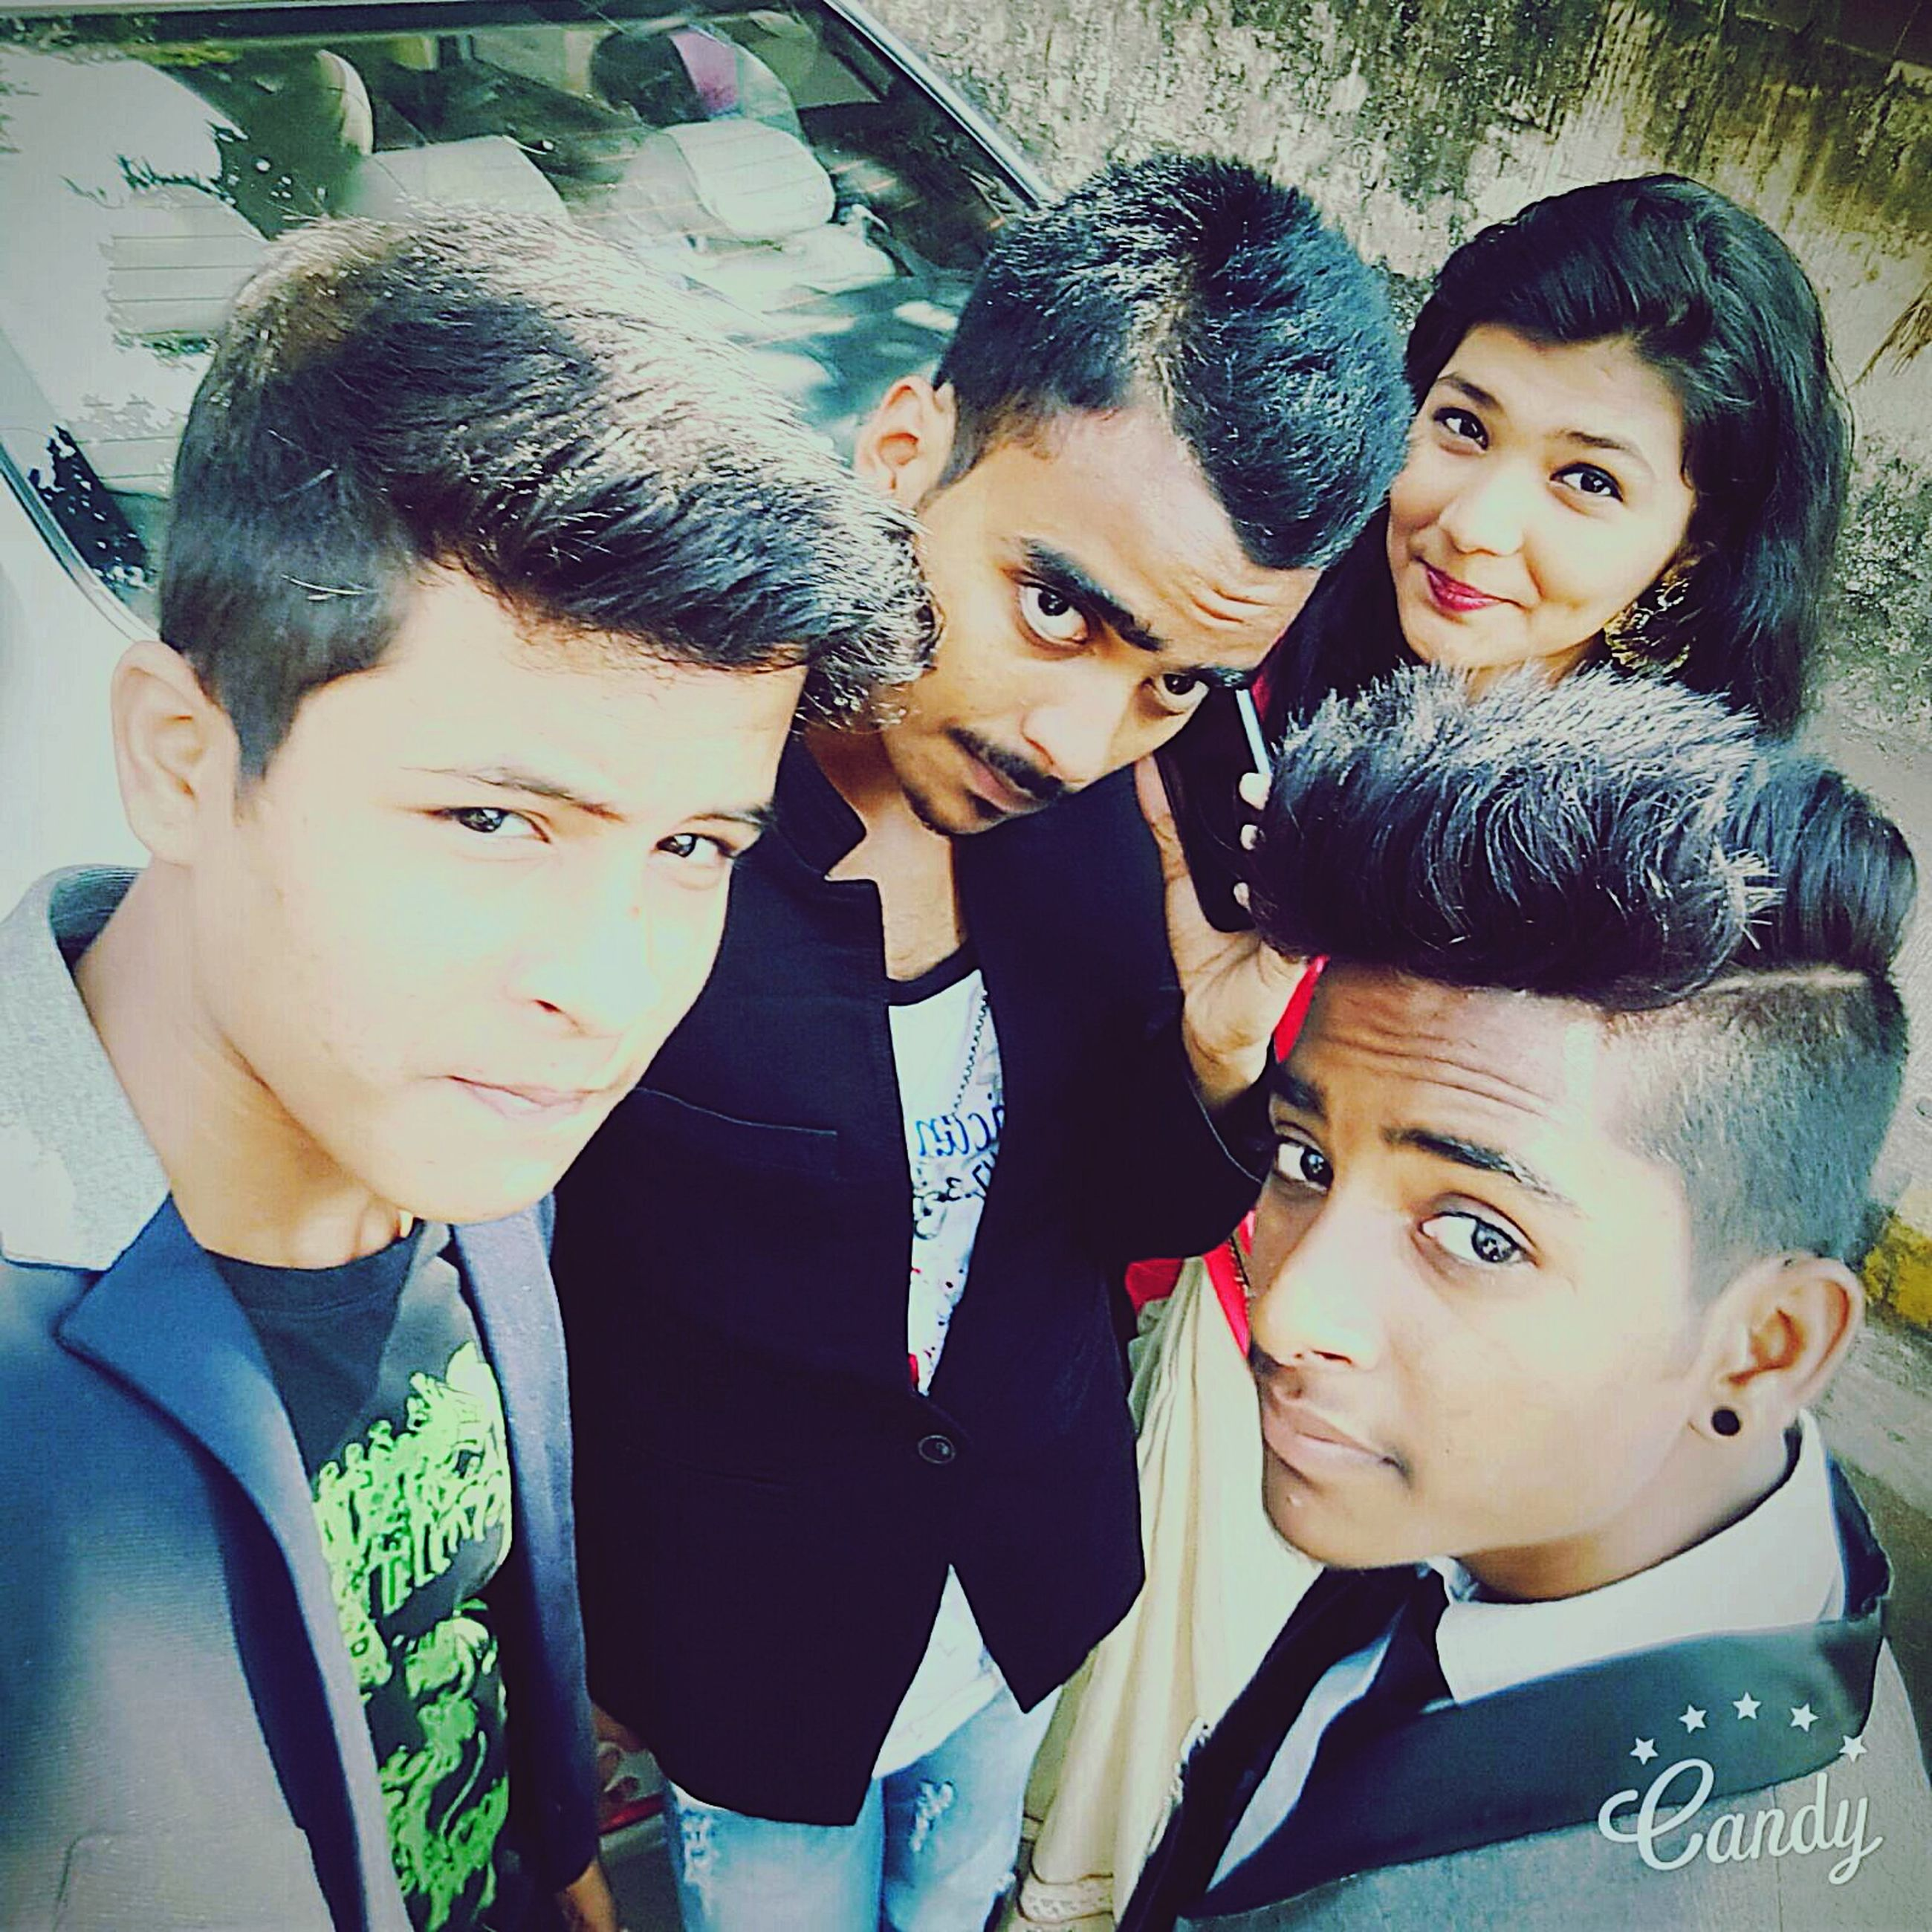 togetherness, bonding, lifestyles, person, looking at camera, portrait, happiness, leisure activity, young adult, love, smiling, friendship, front view, young men, casual clothing, family, enjoyment